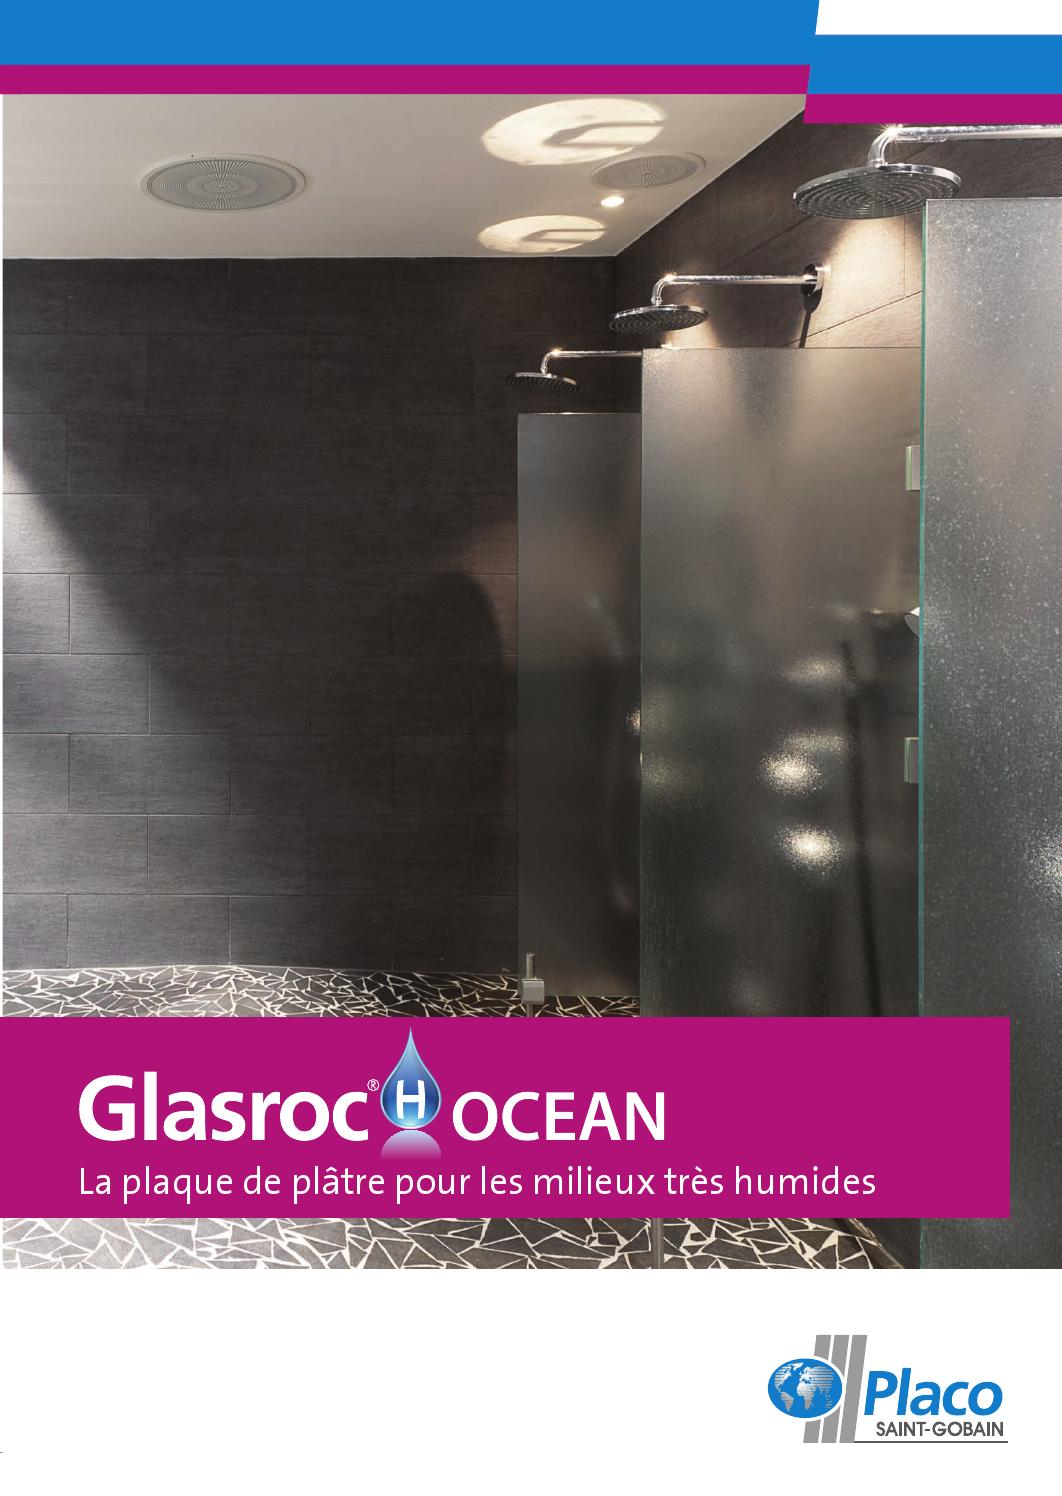 Glasrochoceanplaco By Bigmatfrance Issuu